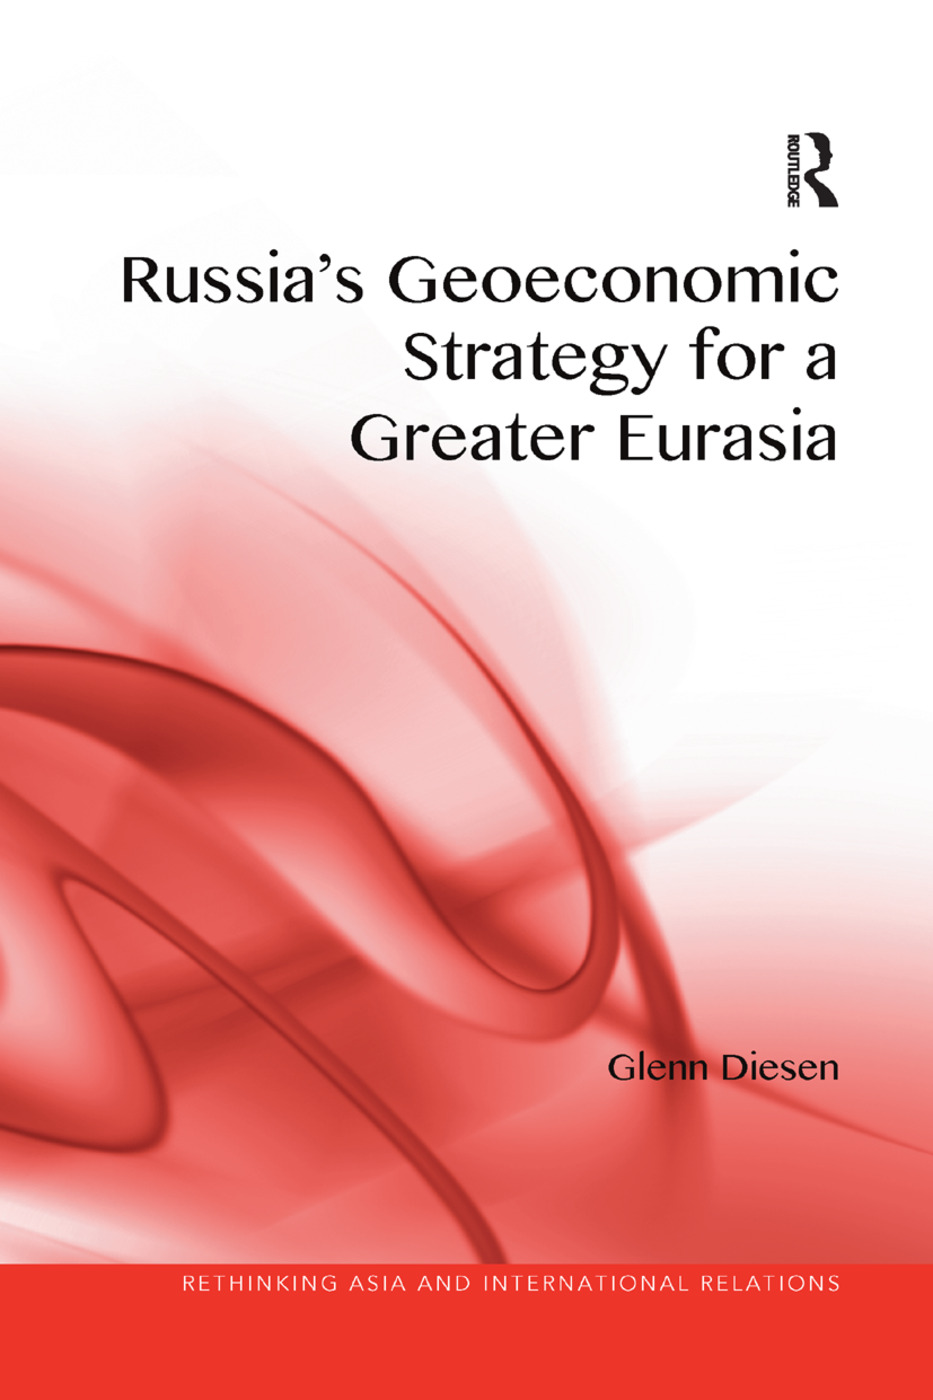 Russia's Geoeconomic Strategy for a Greater Eurasia book cover